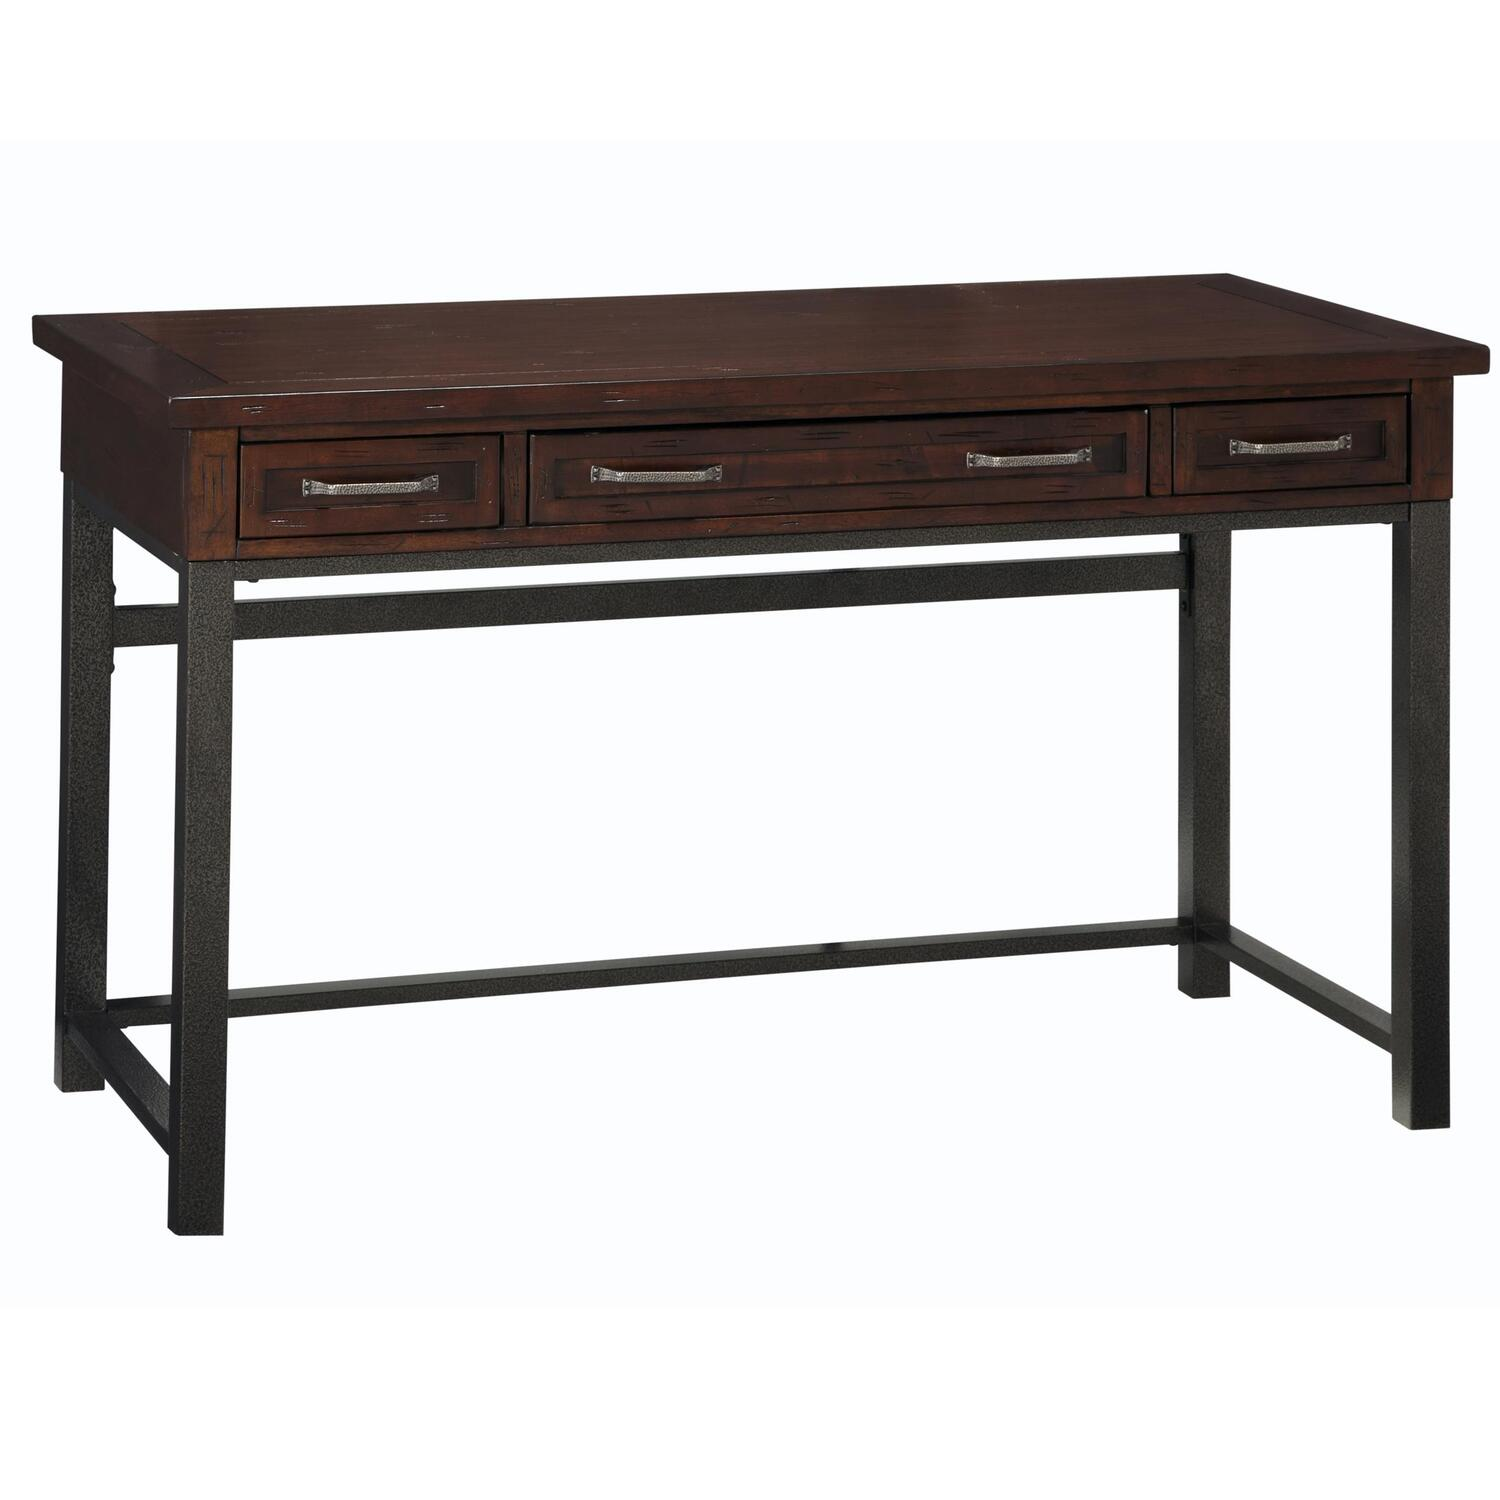 Desk Styles home styles cabin creek executive deskoj commerce 5411-15